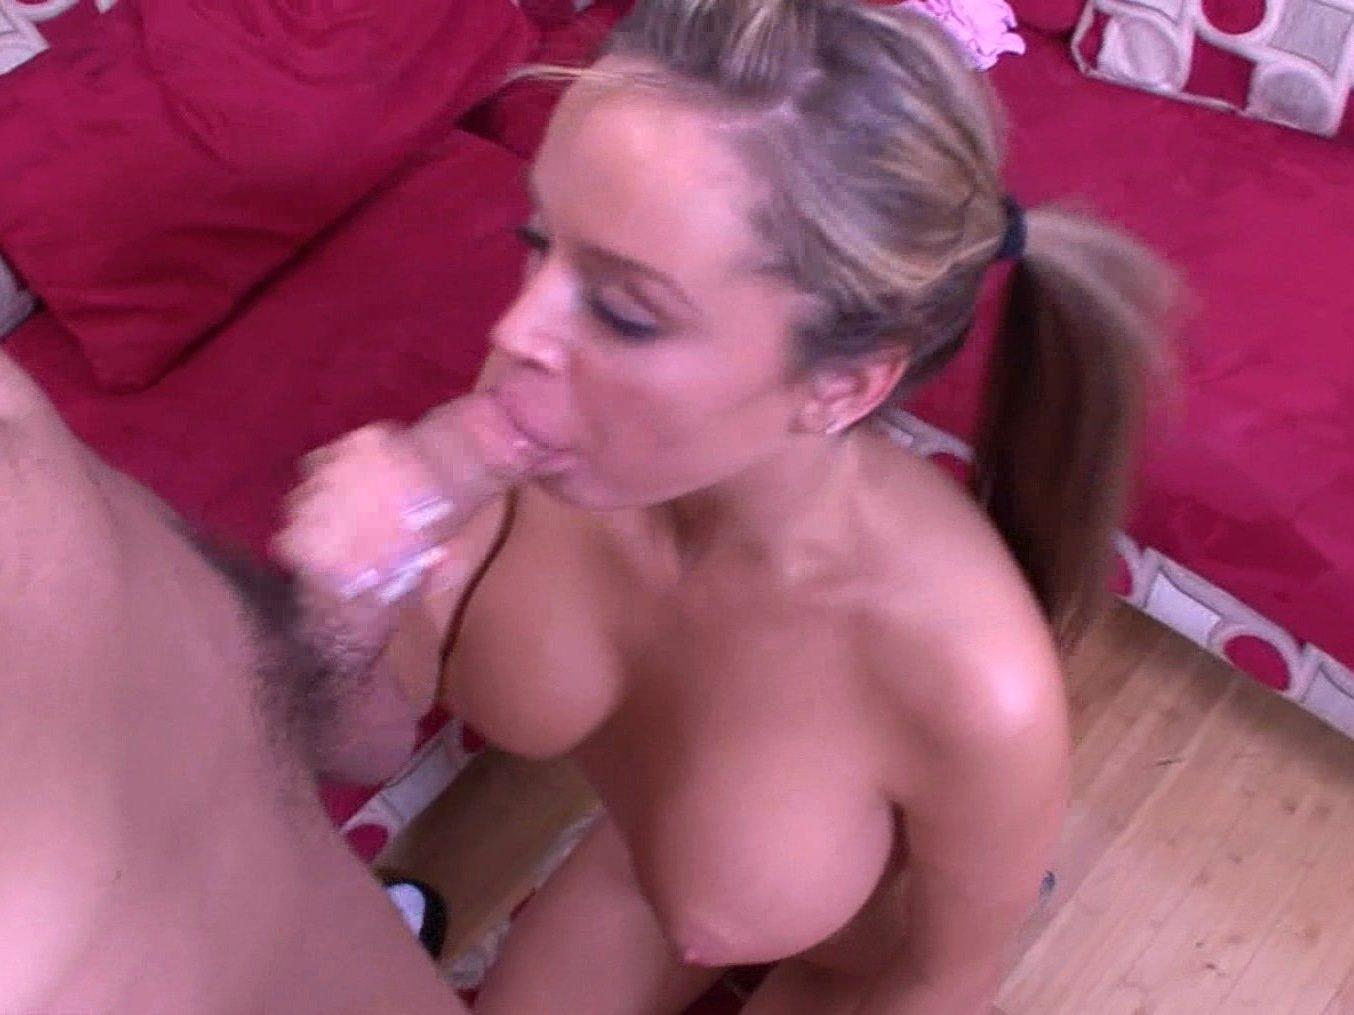 Jenny Mccarthy Porn Video jenny mccarthy deepthroat - nude pics. comments: 5